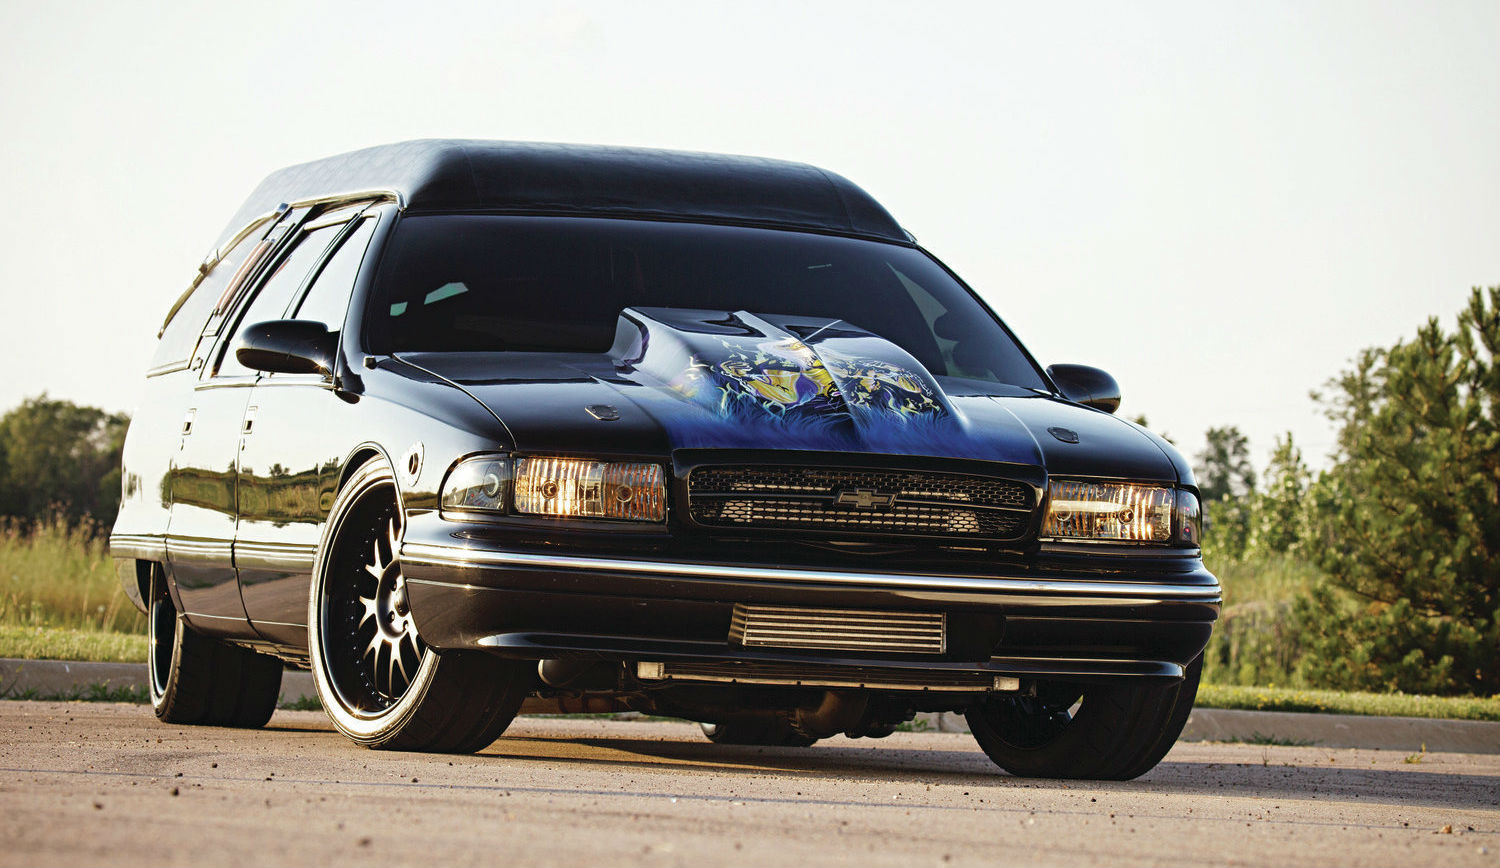 1996-chevrolet-caprice-hearse-front